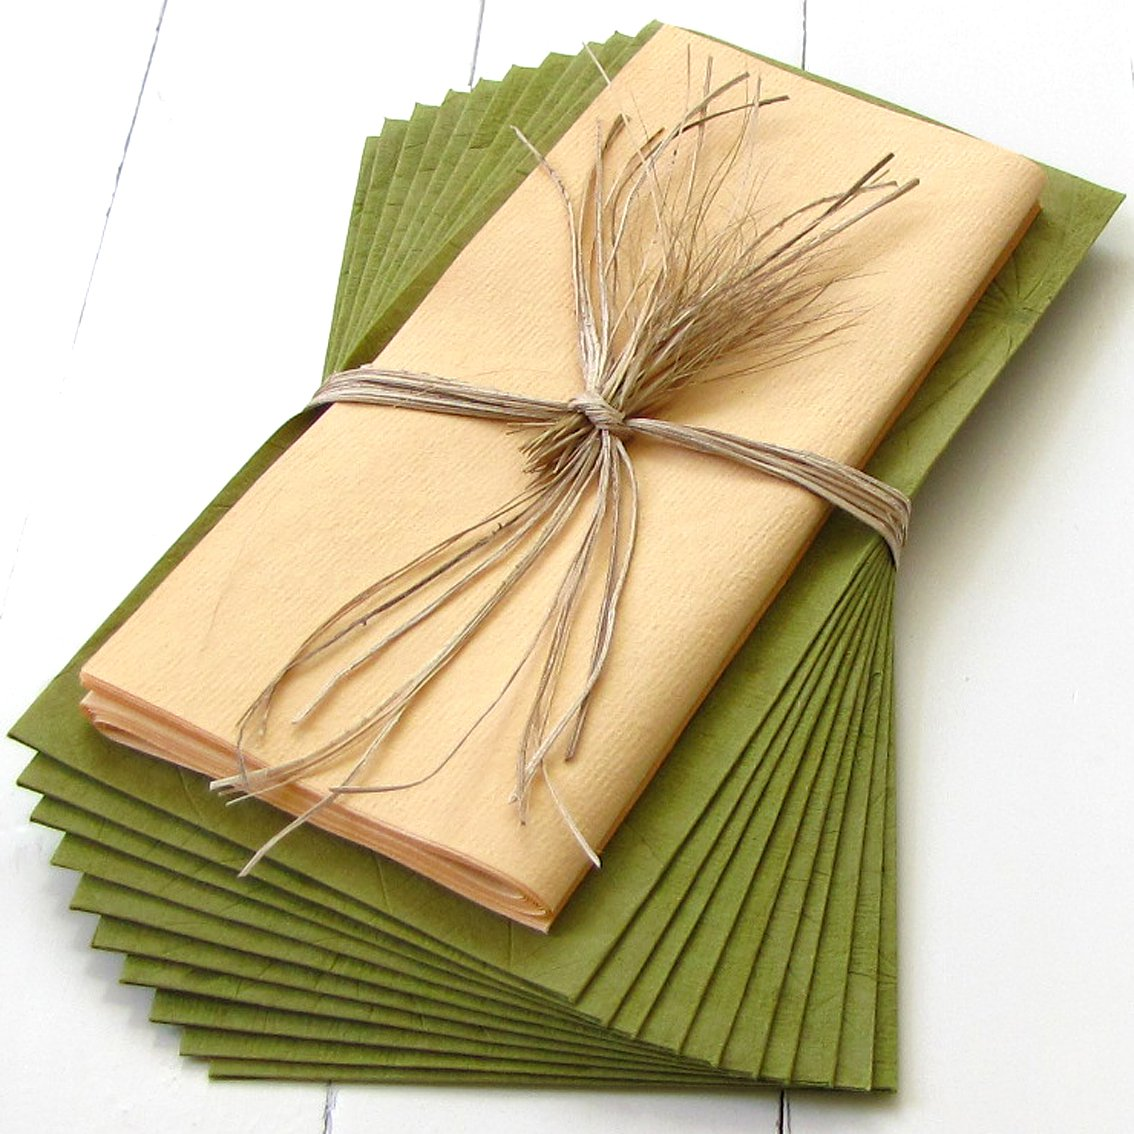 Handmade paper stationery set10 tree free green bday mom xmas gifts gift olive green bday mom xmas gifts and cream